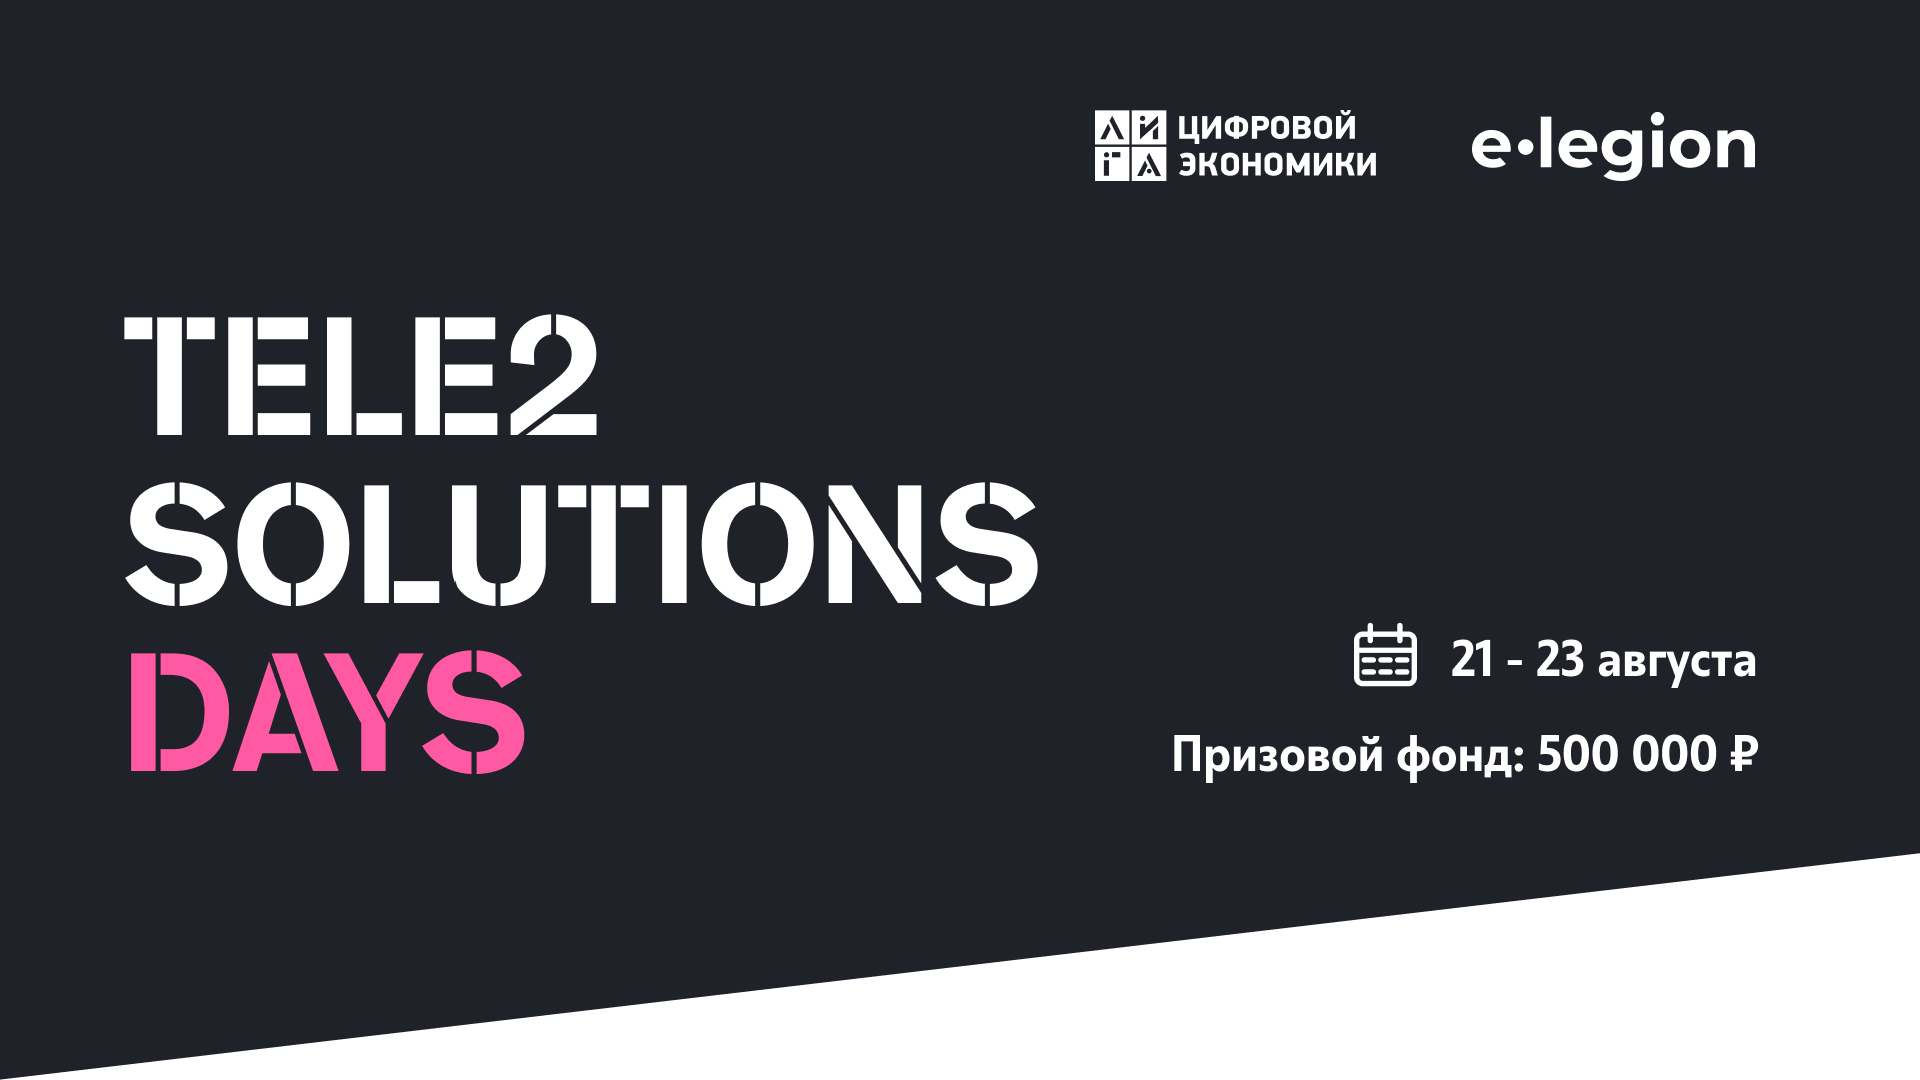 Онлайн-хакатон Tele2 Solutions Days